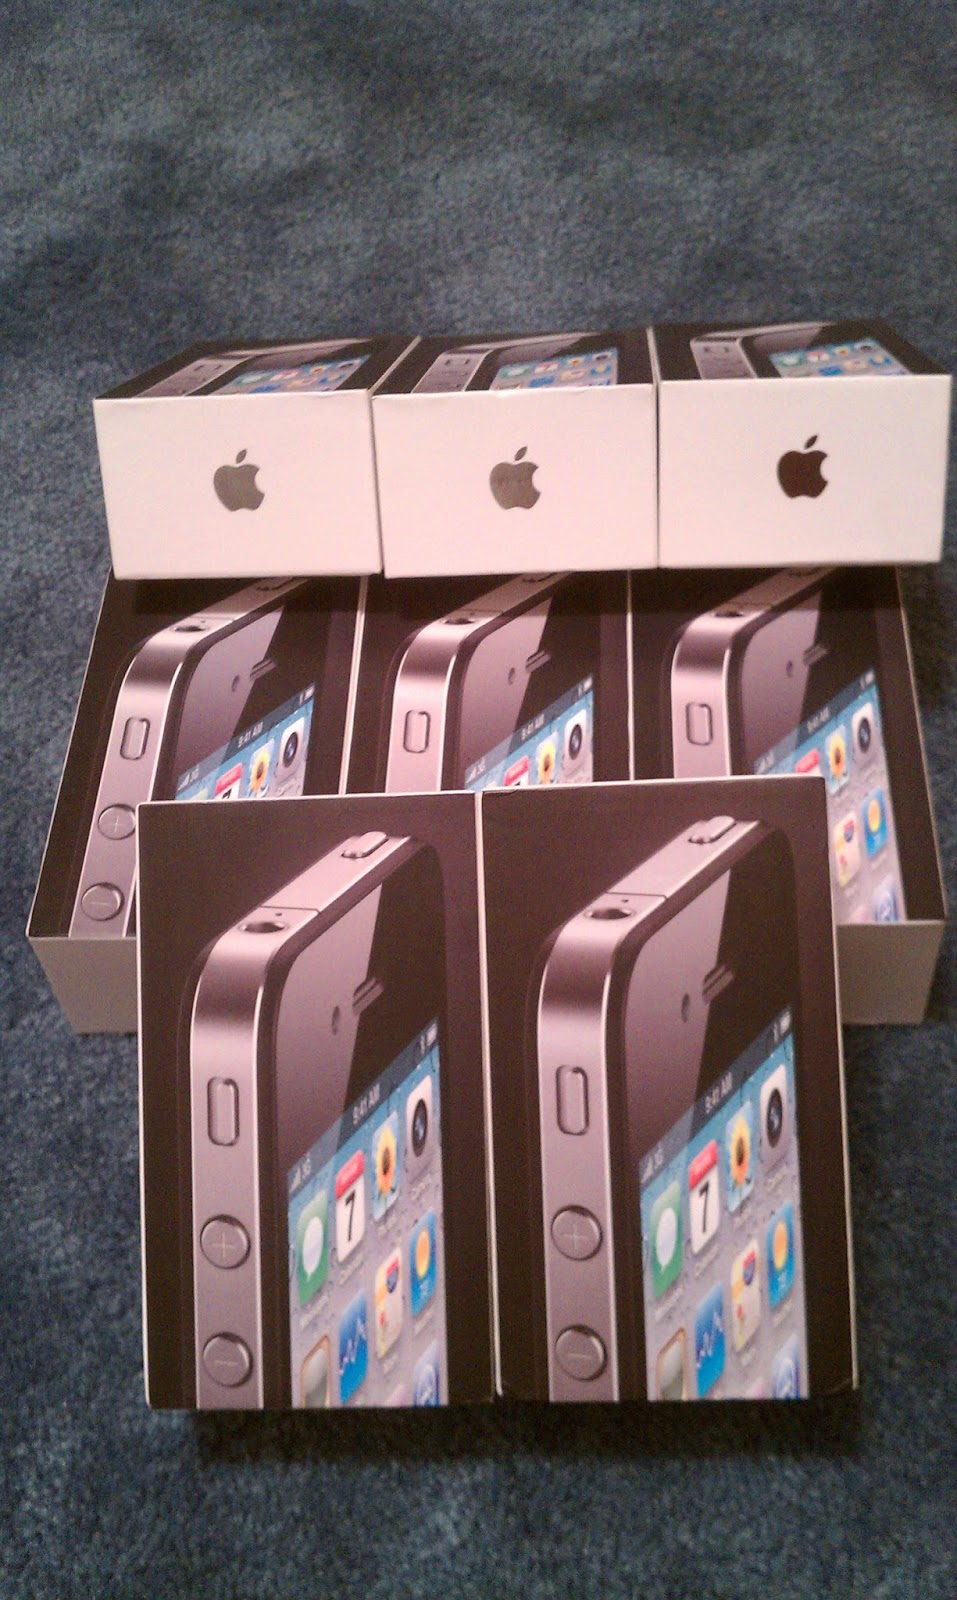 MidwestGSM legitimate, Apple iPhone, testimonial,